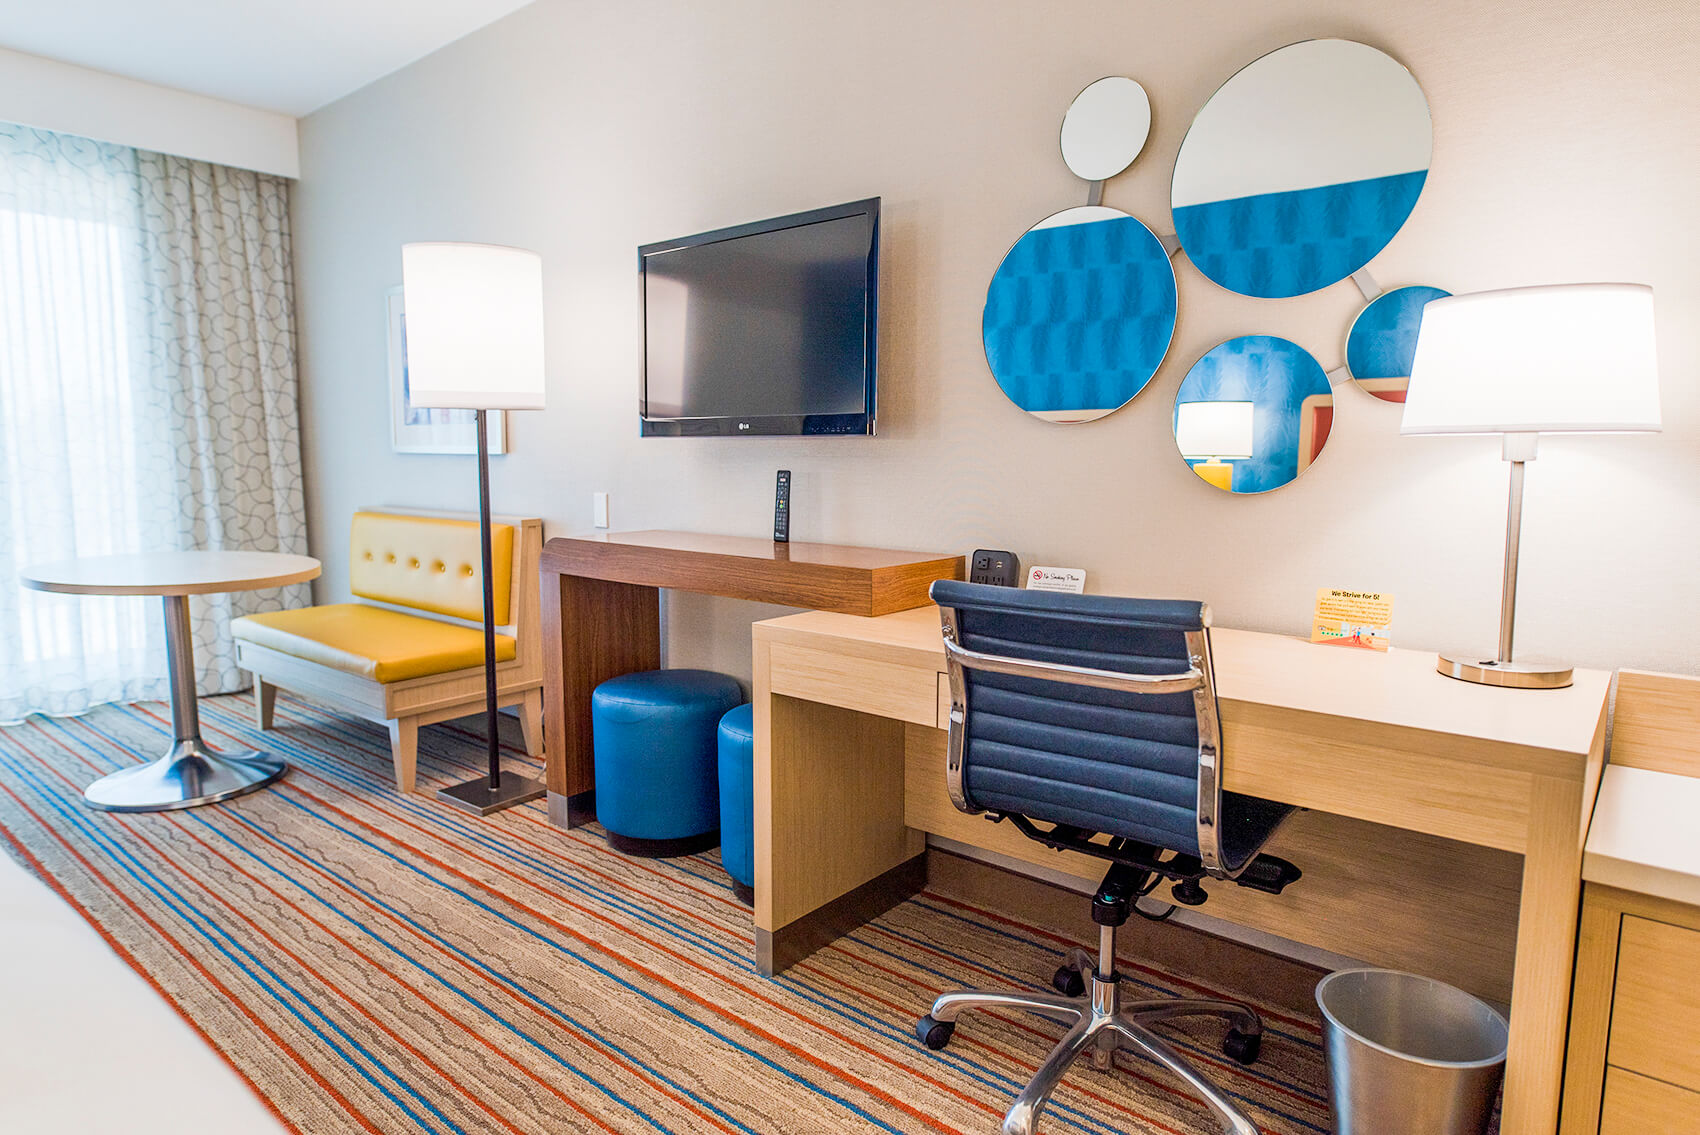 a hotel room with a desk, tv, table and bench